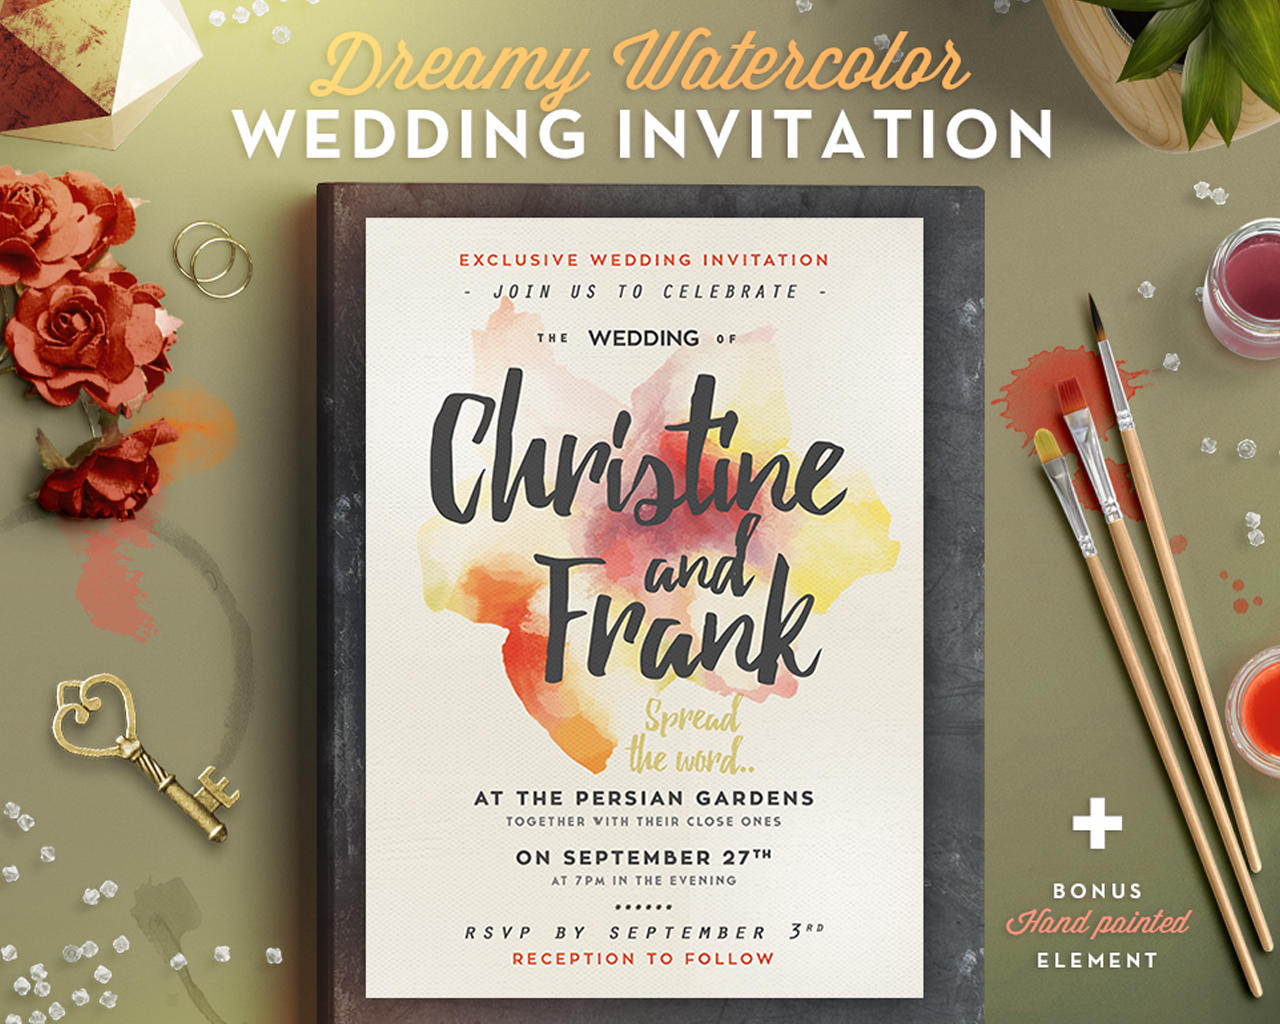 Watercolor wedding invitation design by lavie1blonde on envato studio watercolor wedding invitation design stopboris Image collections